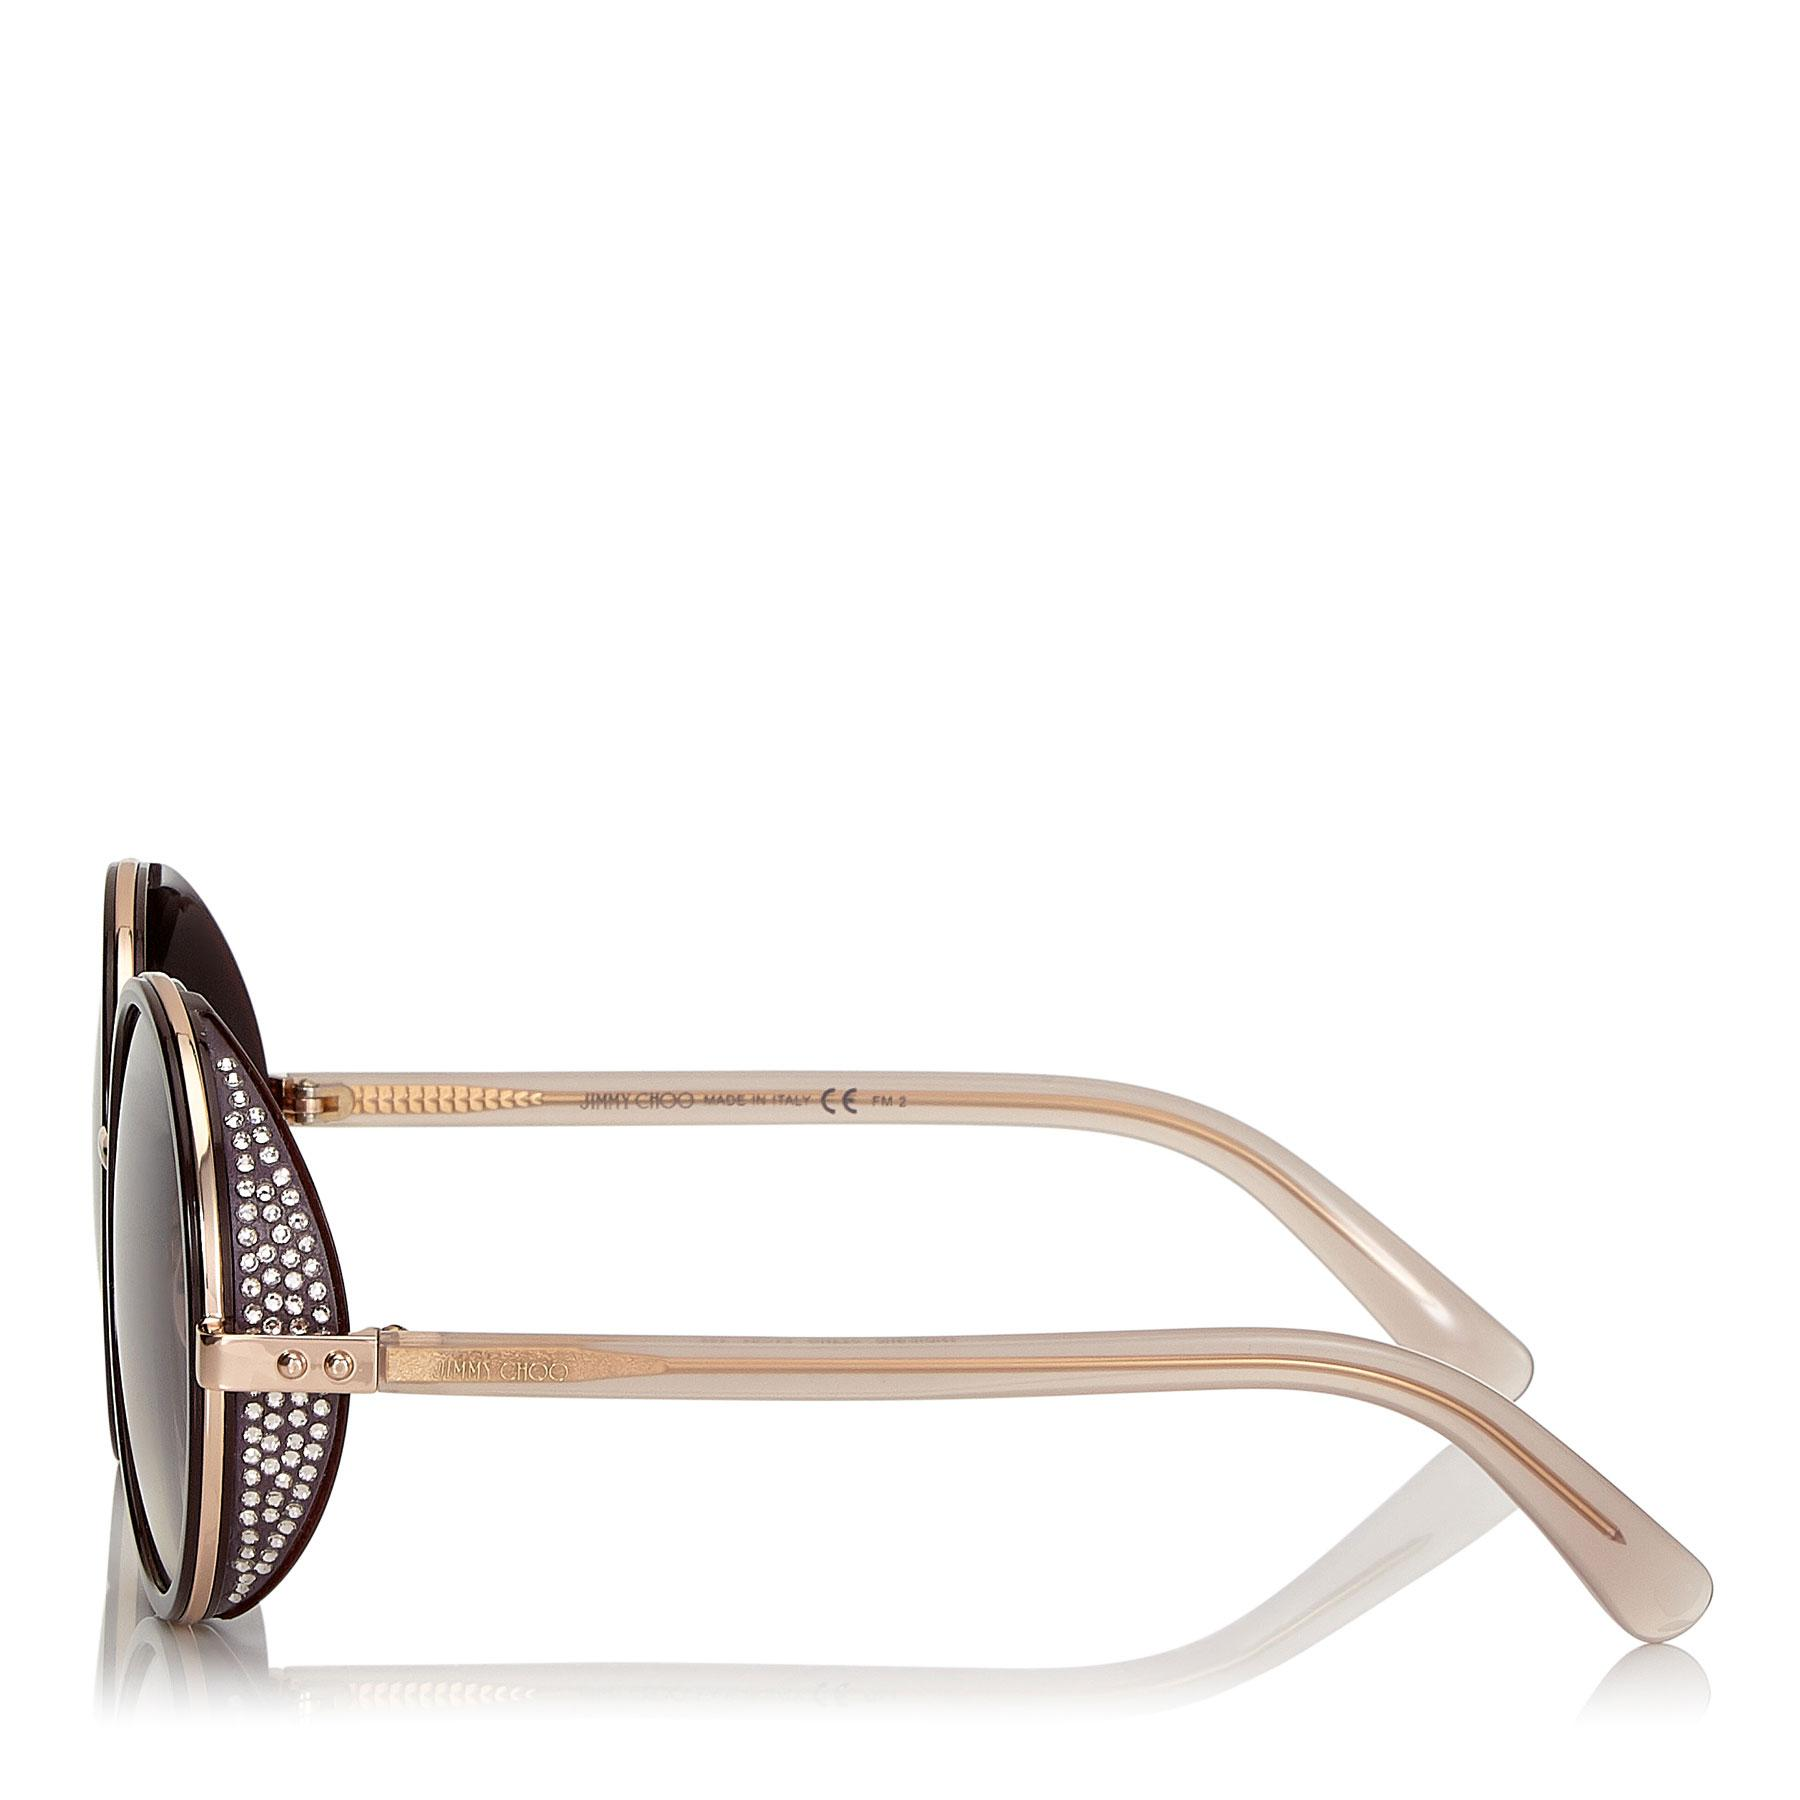 e6c51199bdc Jimmy Choo - Metallic Andie Burgundy And Copper Gold Metal Round Framed  Sunglasses With Crystal Detailing. View fullscreen